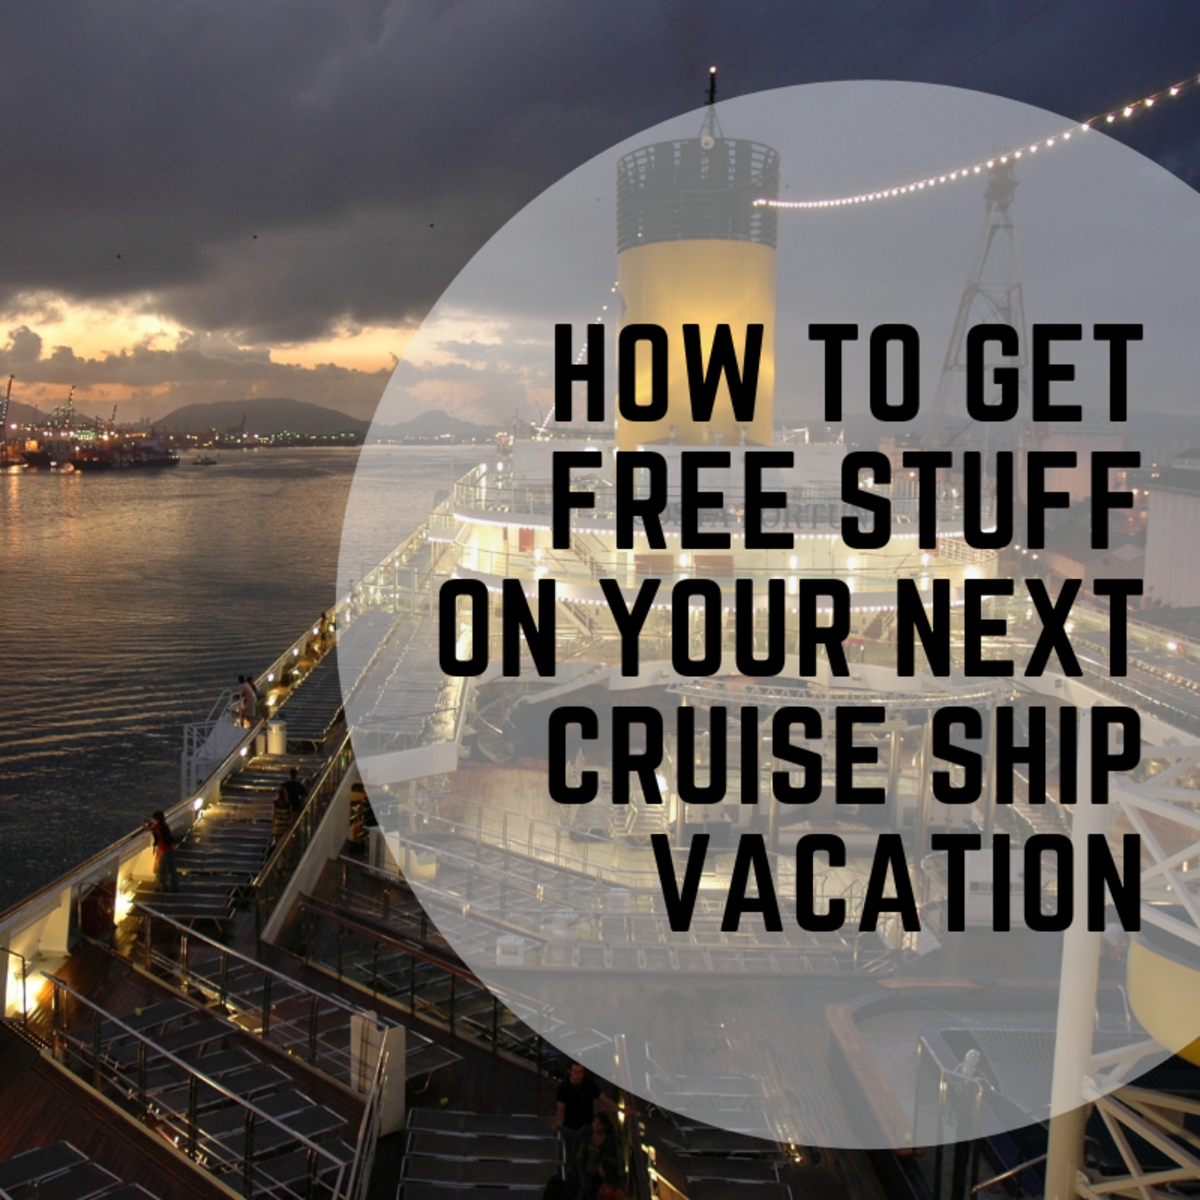 How to Get Free Stuff on Your Next Cruise Ship Vacation